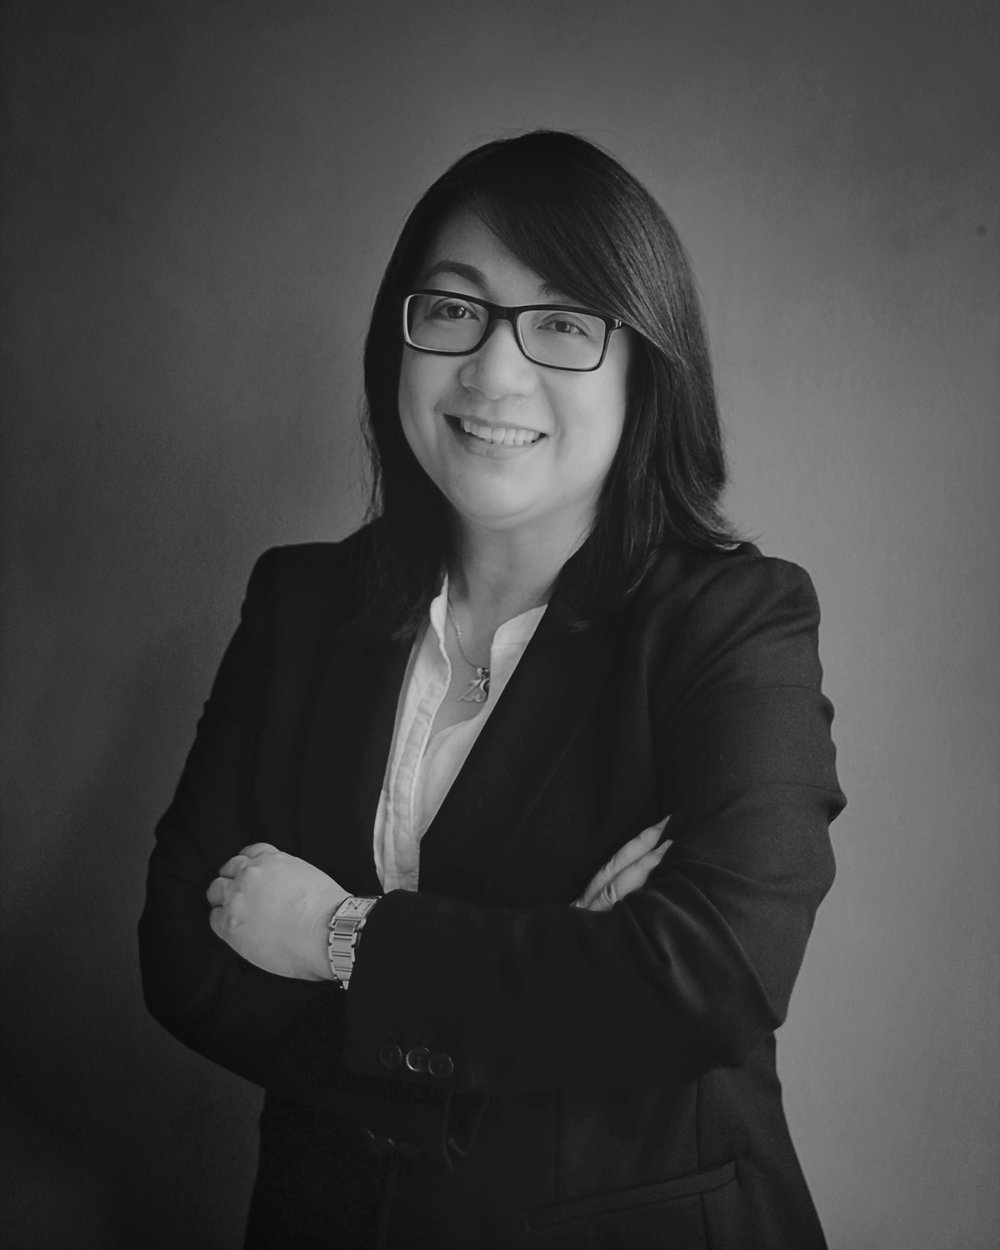 Lachmi Baviera, Program Head Music Business Management Former Warner Music Philippines General Manager, Lachmi Baviera is the newly installed program head for the Music Business Management program.  She will continue the legacy of the late Eugene Villauz, founder of the MBM program, who passed away in 2017. Previously, Lachmi was at the helm of Warner Music Philippines, leading the record label into the digital age by transforming it from a traditional music label into a digital entertainment company.  She brings her professional experience from the music business world to academia. She has made it her personal mission to uplift the Philippine music scene by providing more and more opportunities for independent artists to showcase their talent to a global market.  Lachmi was also on the board of the Philippine Assoc. for the Recording Industry (PARI).  She received her bachelor's degree in Marketing from St. Paul's College, Manila.